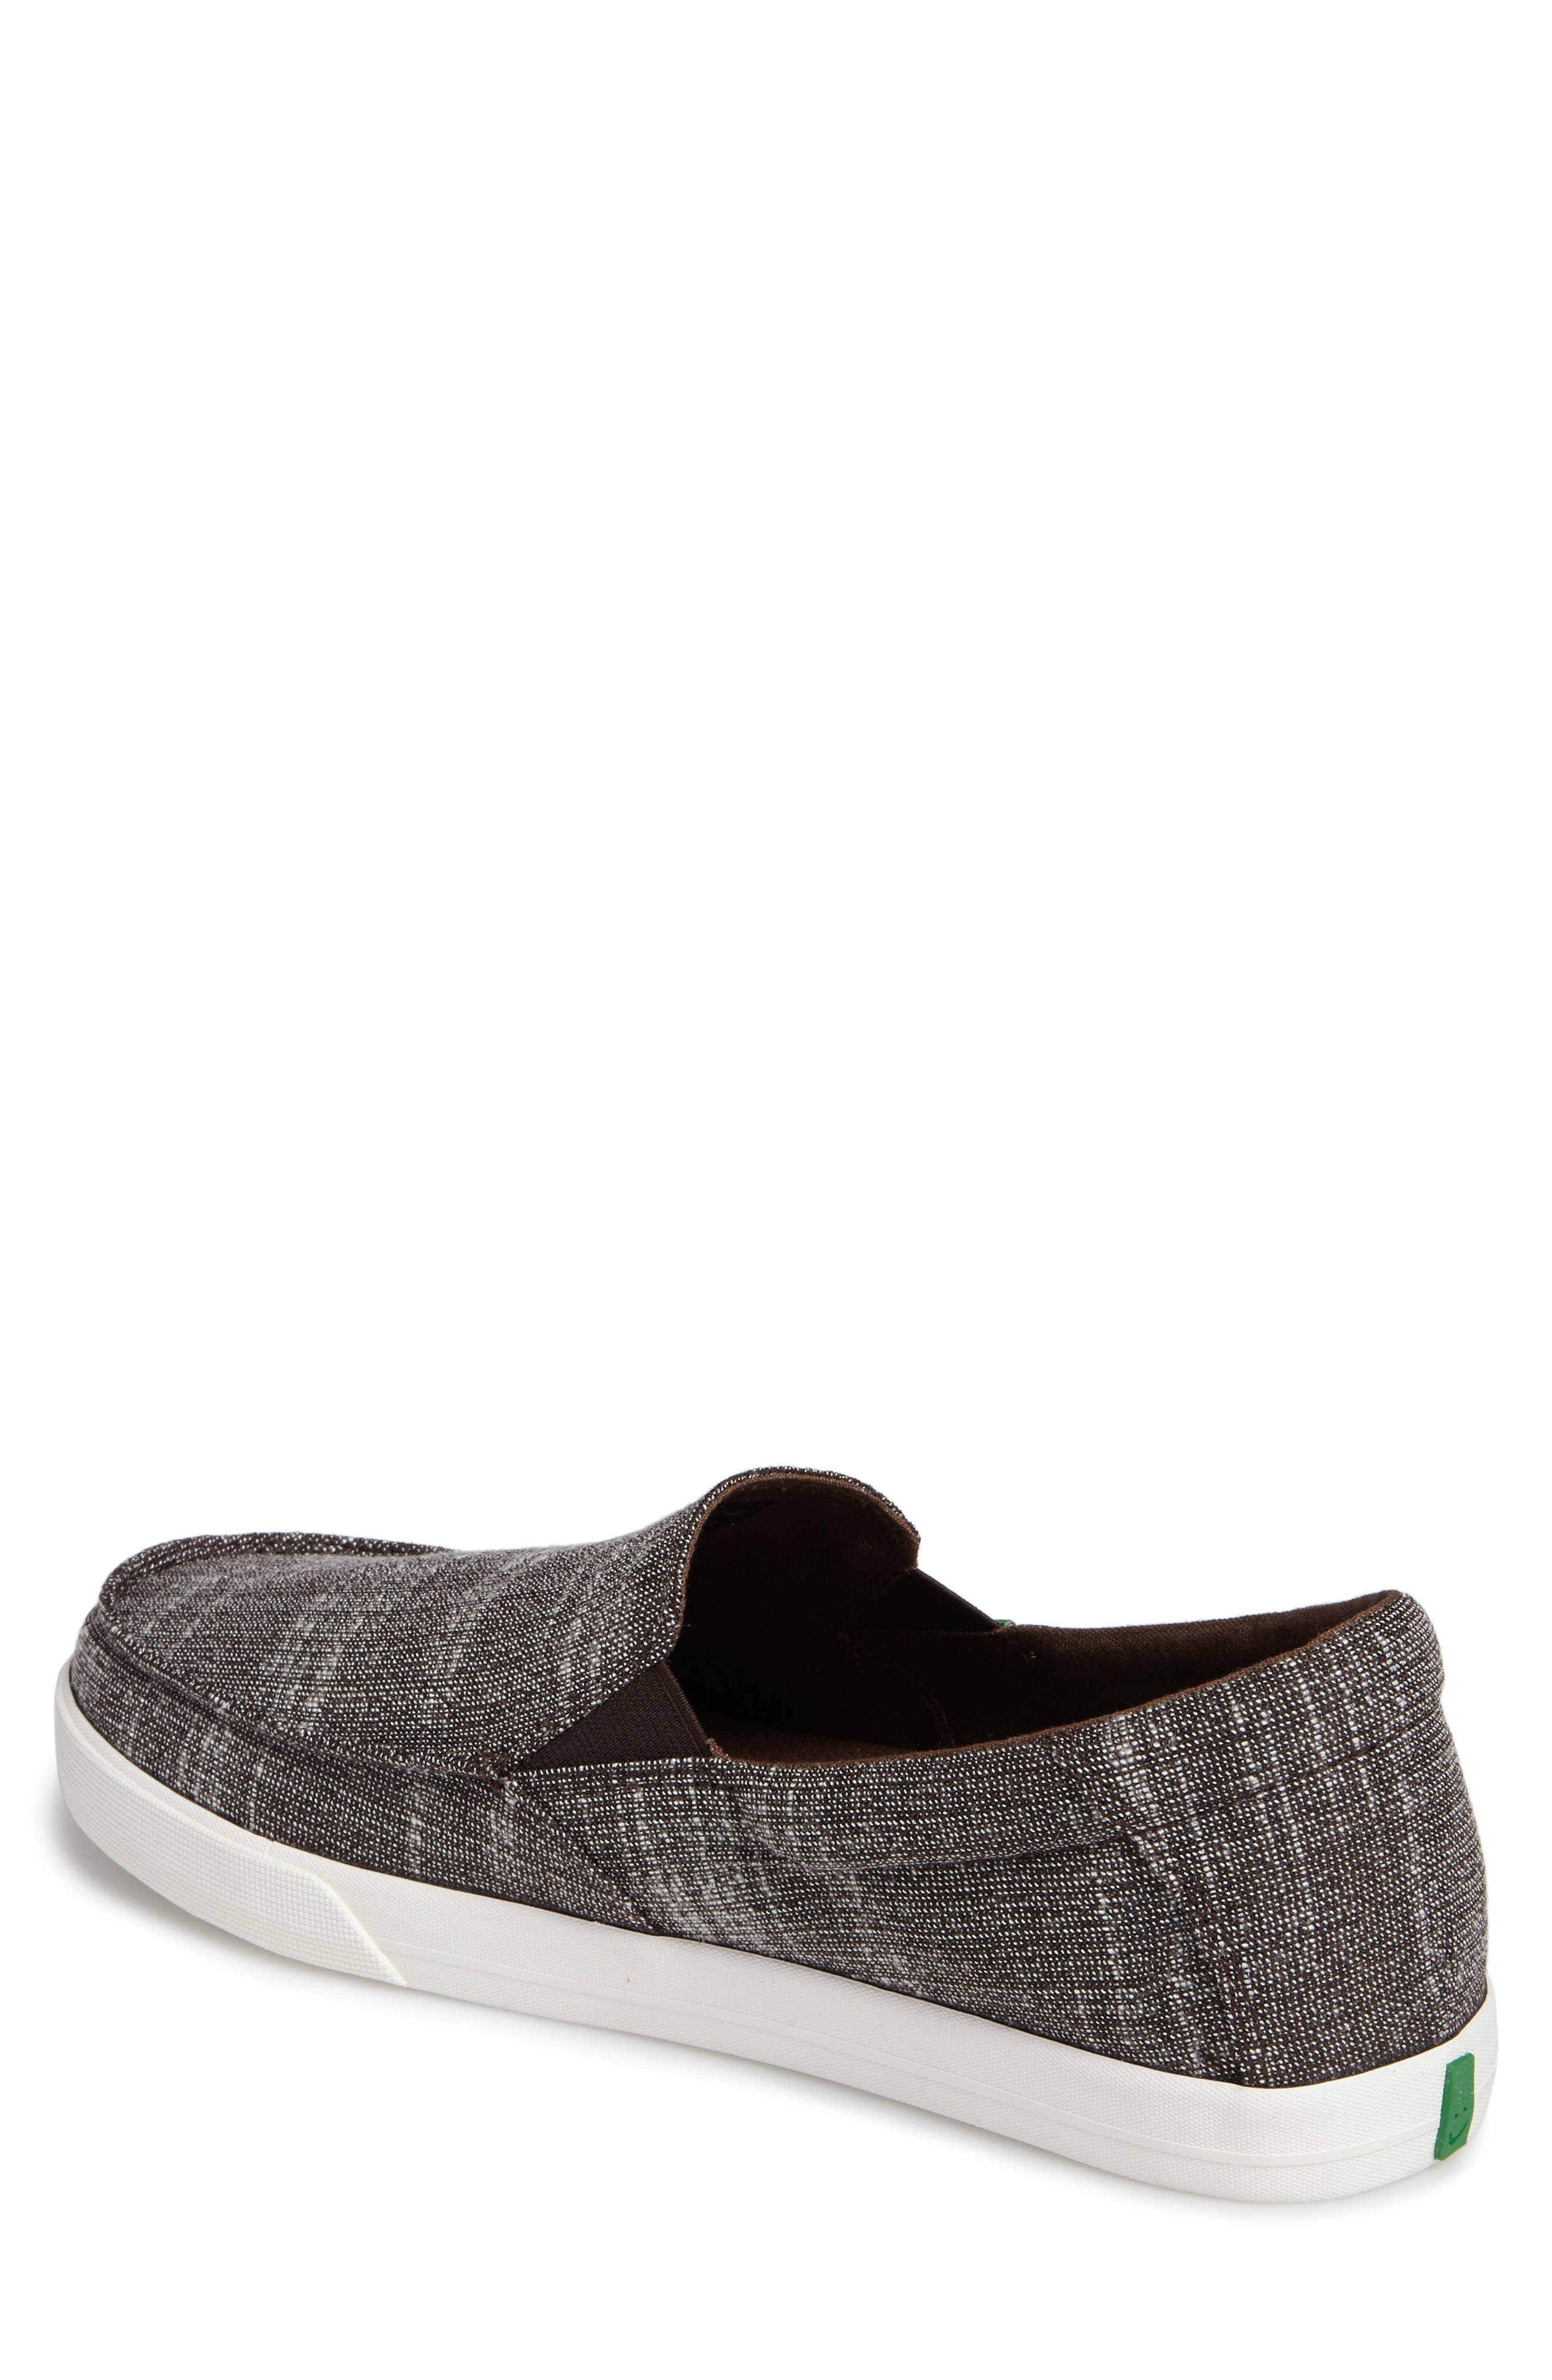 'Sideline' Linen Slip-On,                             Alternate thumbnail 2, color,                             Brown